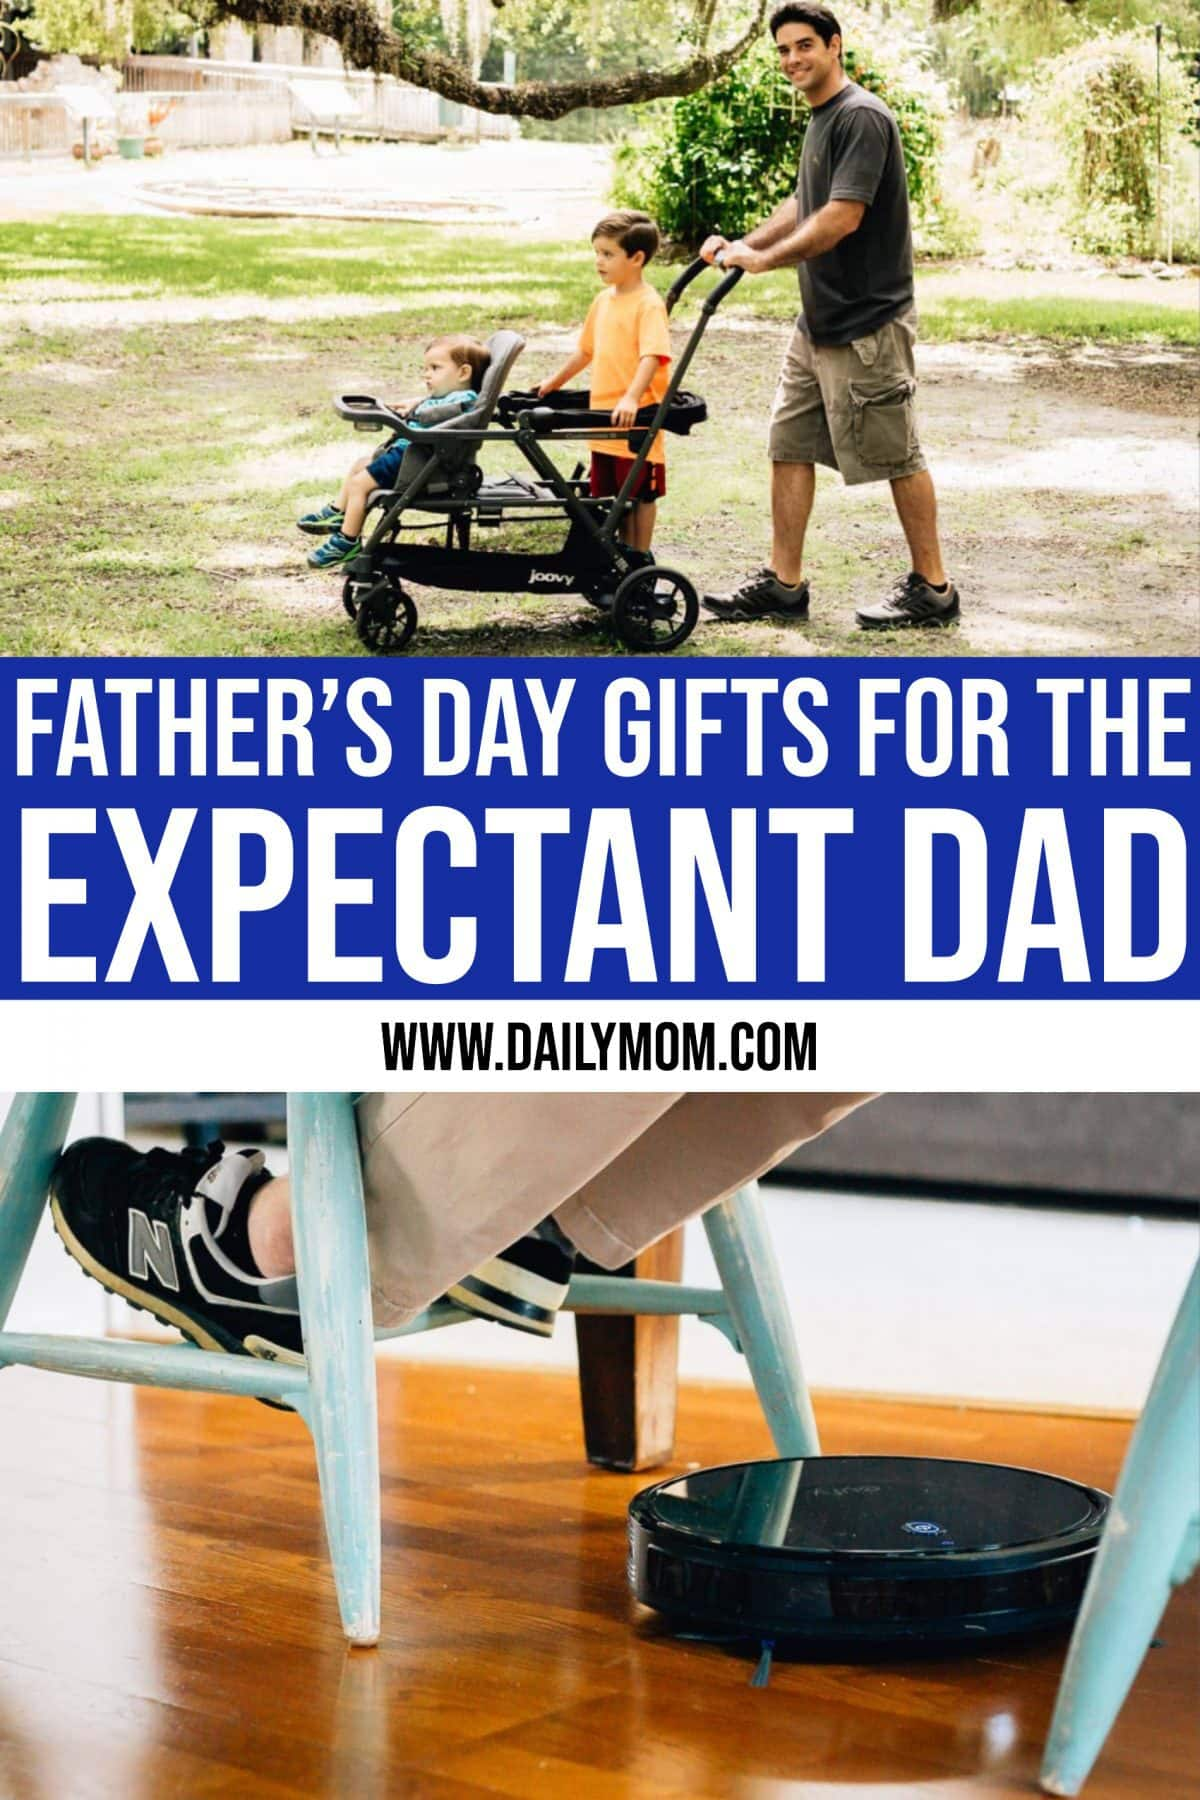 8 Father's Day Gifts For Expectant Dads